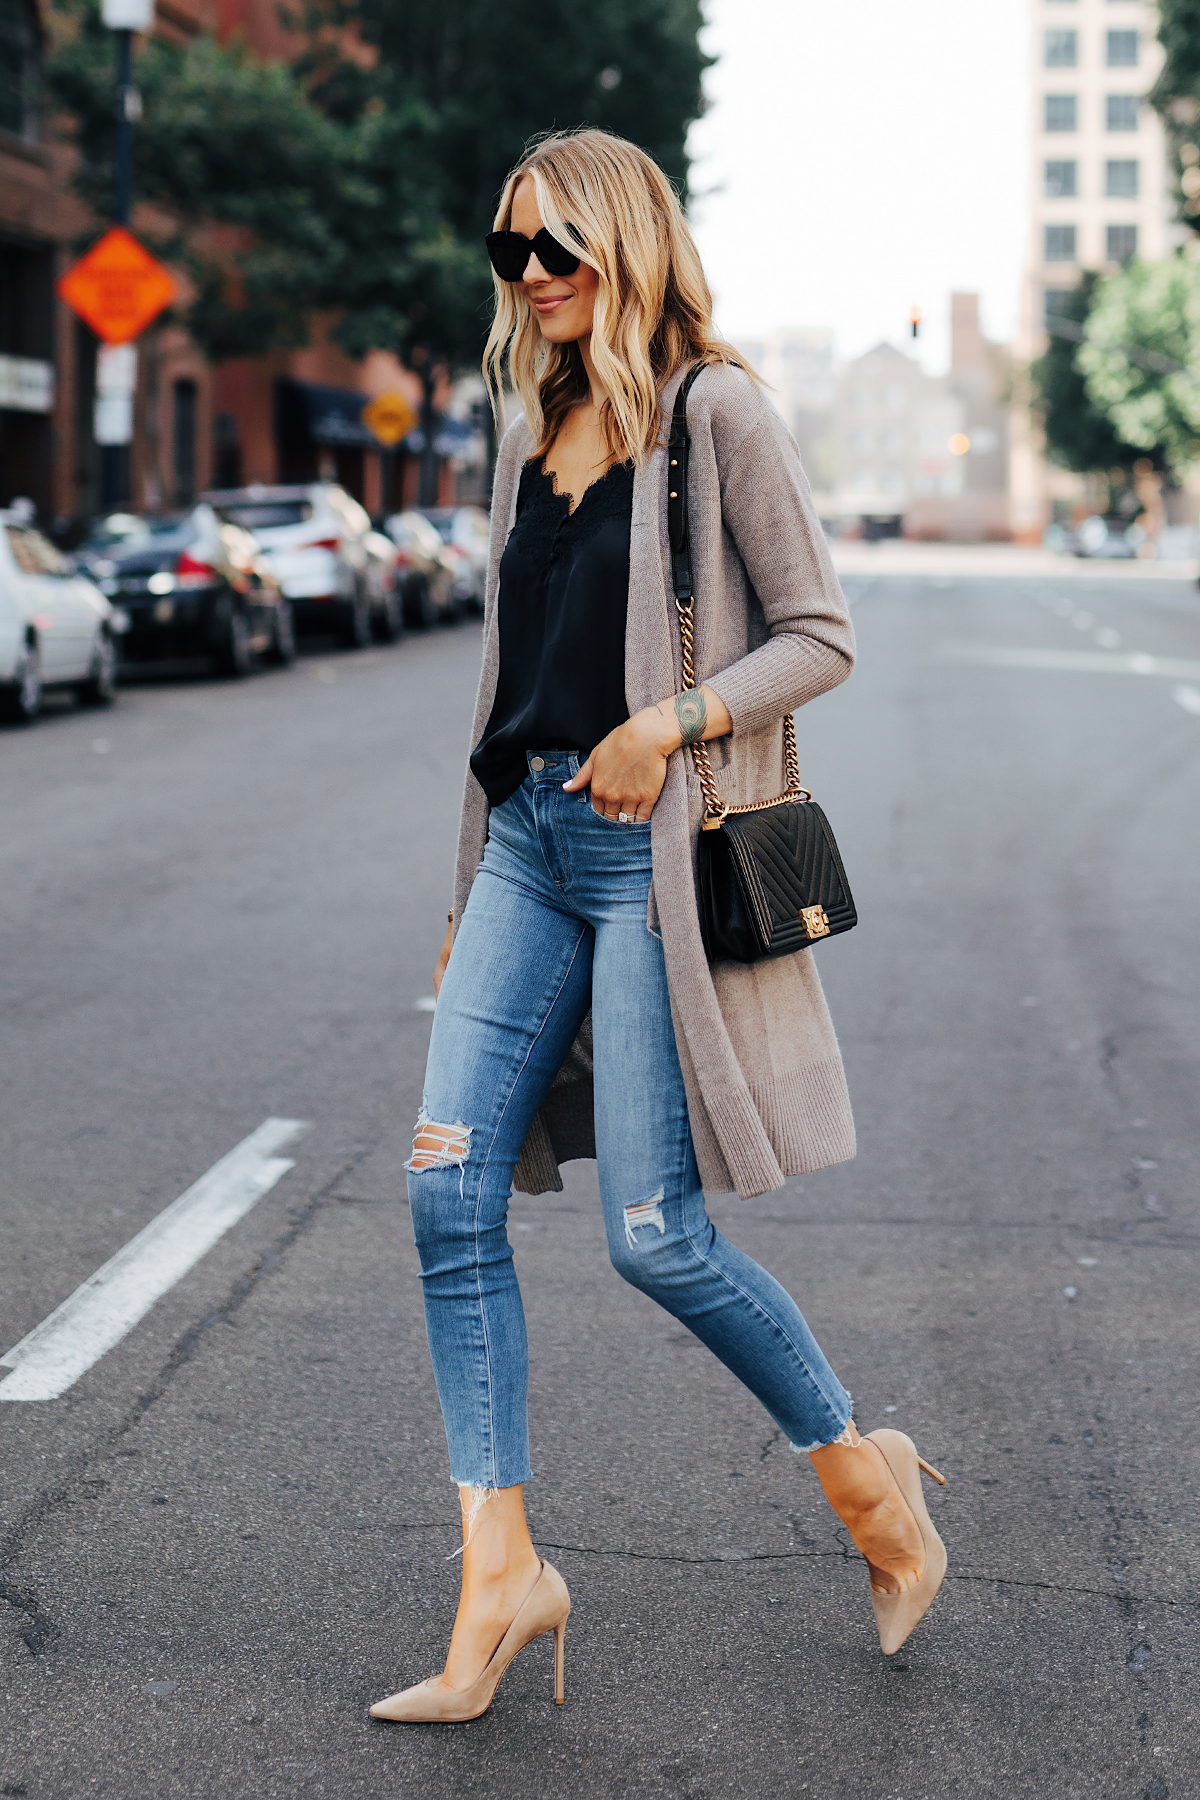 Fashion Jackson Wearing Nordstrom Anniversary Sale Halogen Cashmere Cardgian Black Lace Cami Paige Hoxton Skinny Jeans Chanel Black Boy Bag Nude Pumps